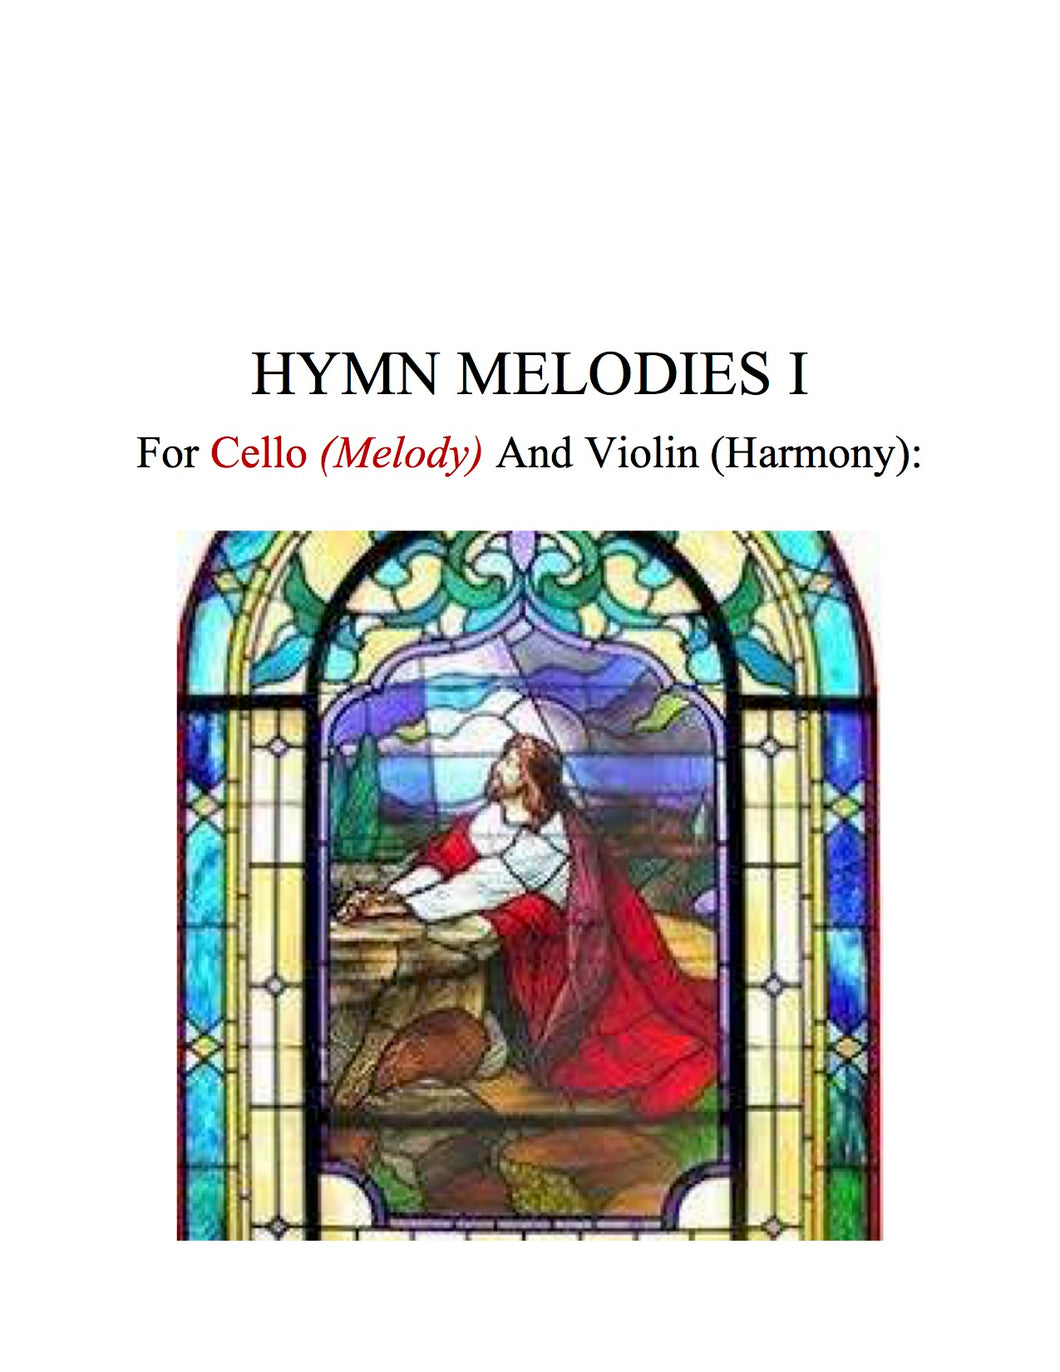 093 - Hymn Melodies For Cello and Violin, Volume I